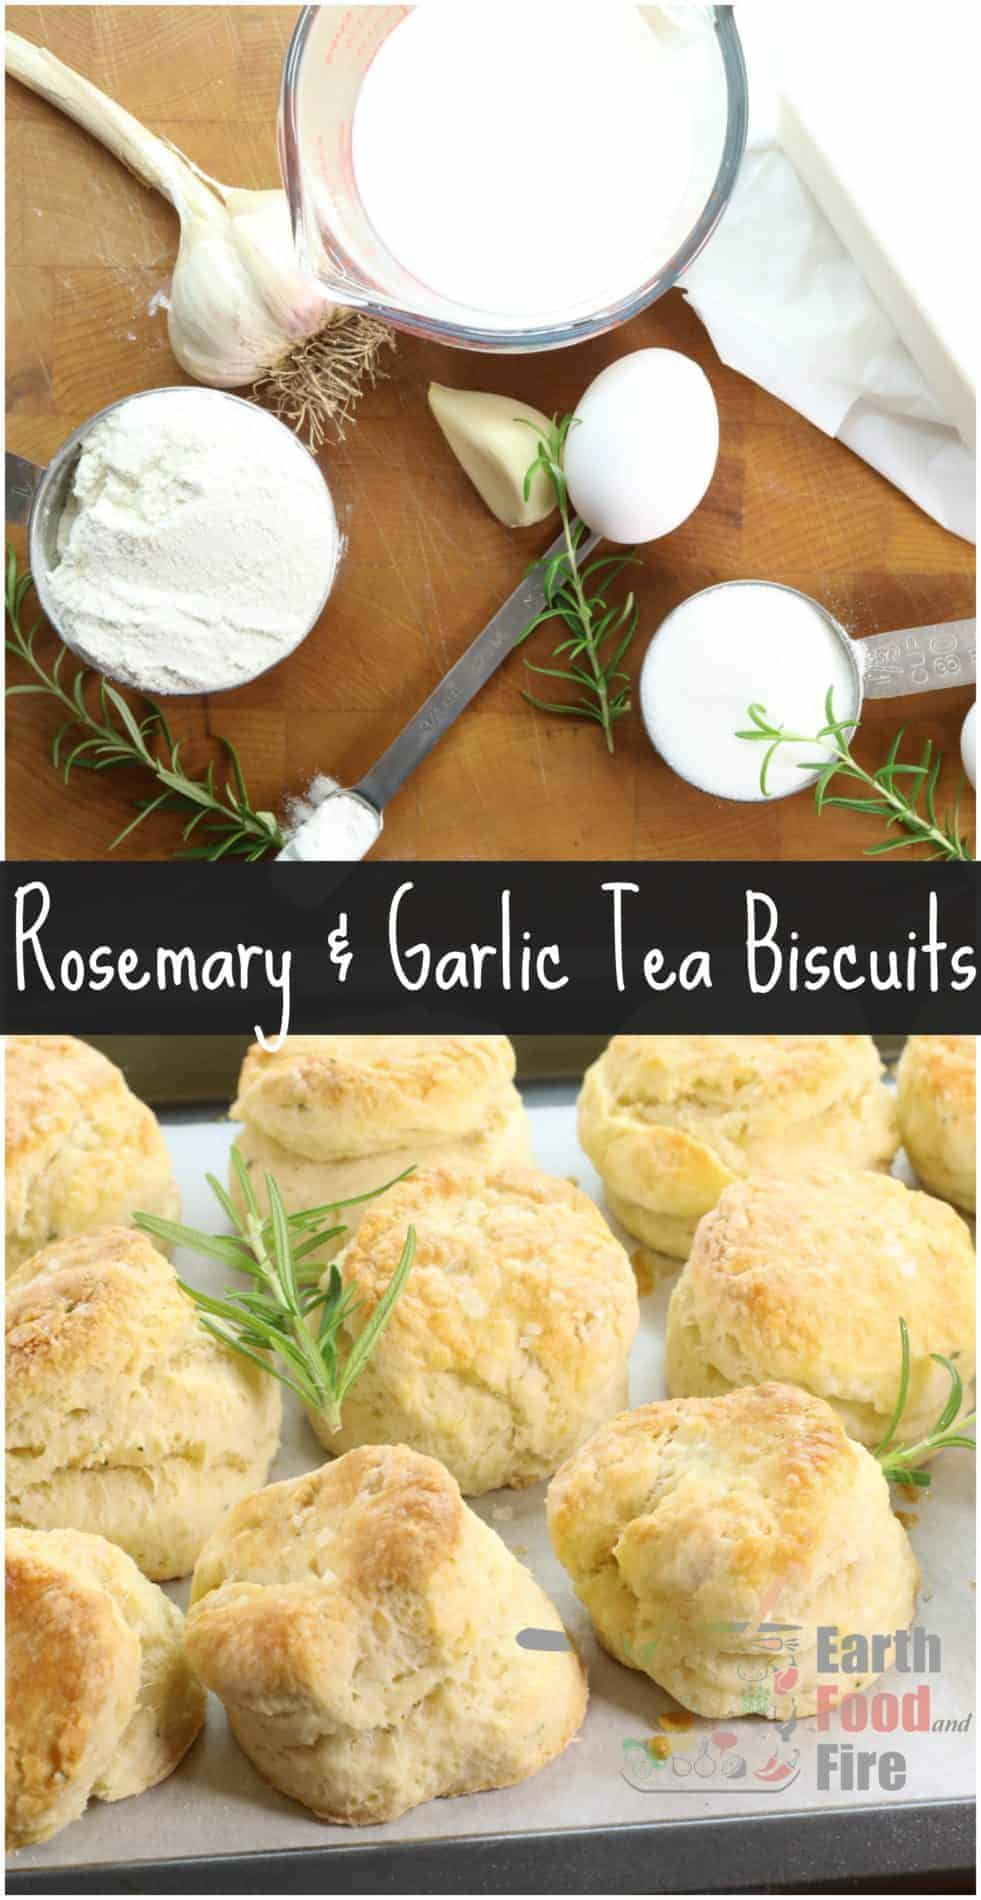 Delicious Rosemary and Garlic Biscuits. The perfect addition to any family meal, try these homemade biscuits tonight! #biscuits #teabiscuits #homemade #fromscratch